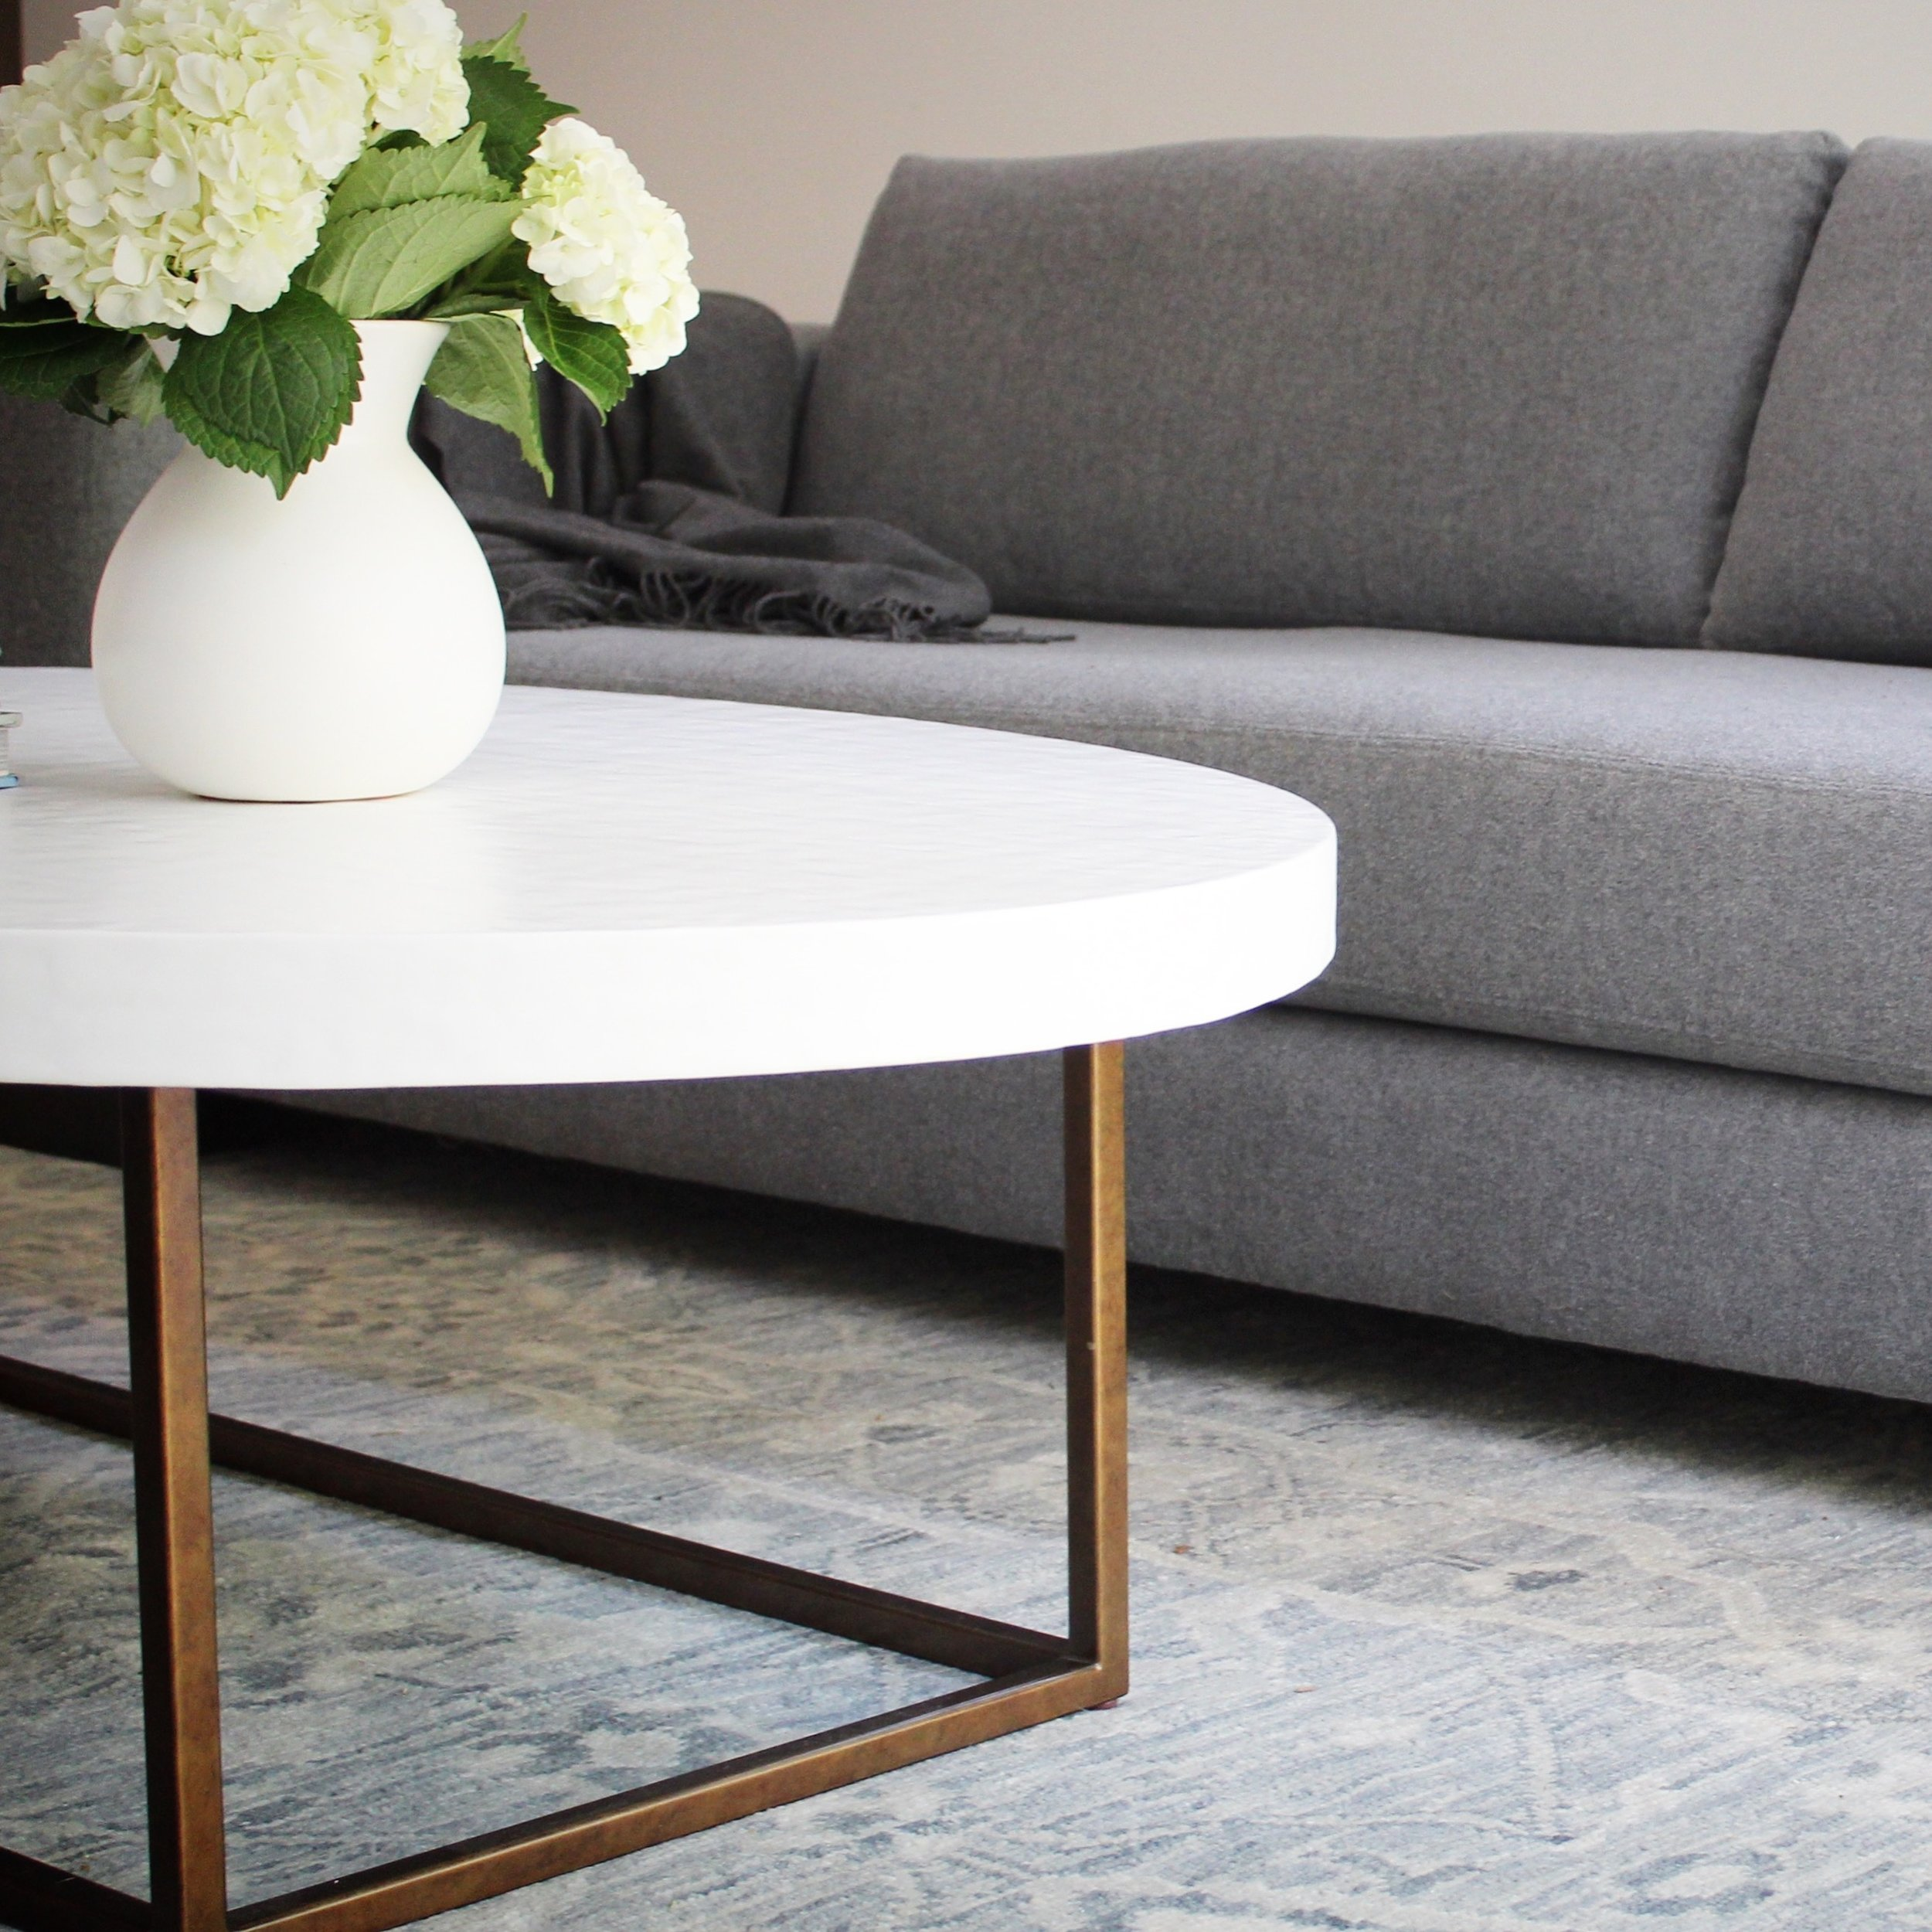 The coffee table centered between the sofas is an elegant and easy piece from Bungalow Classic.